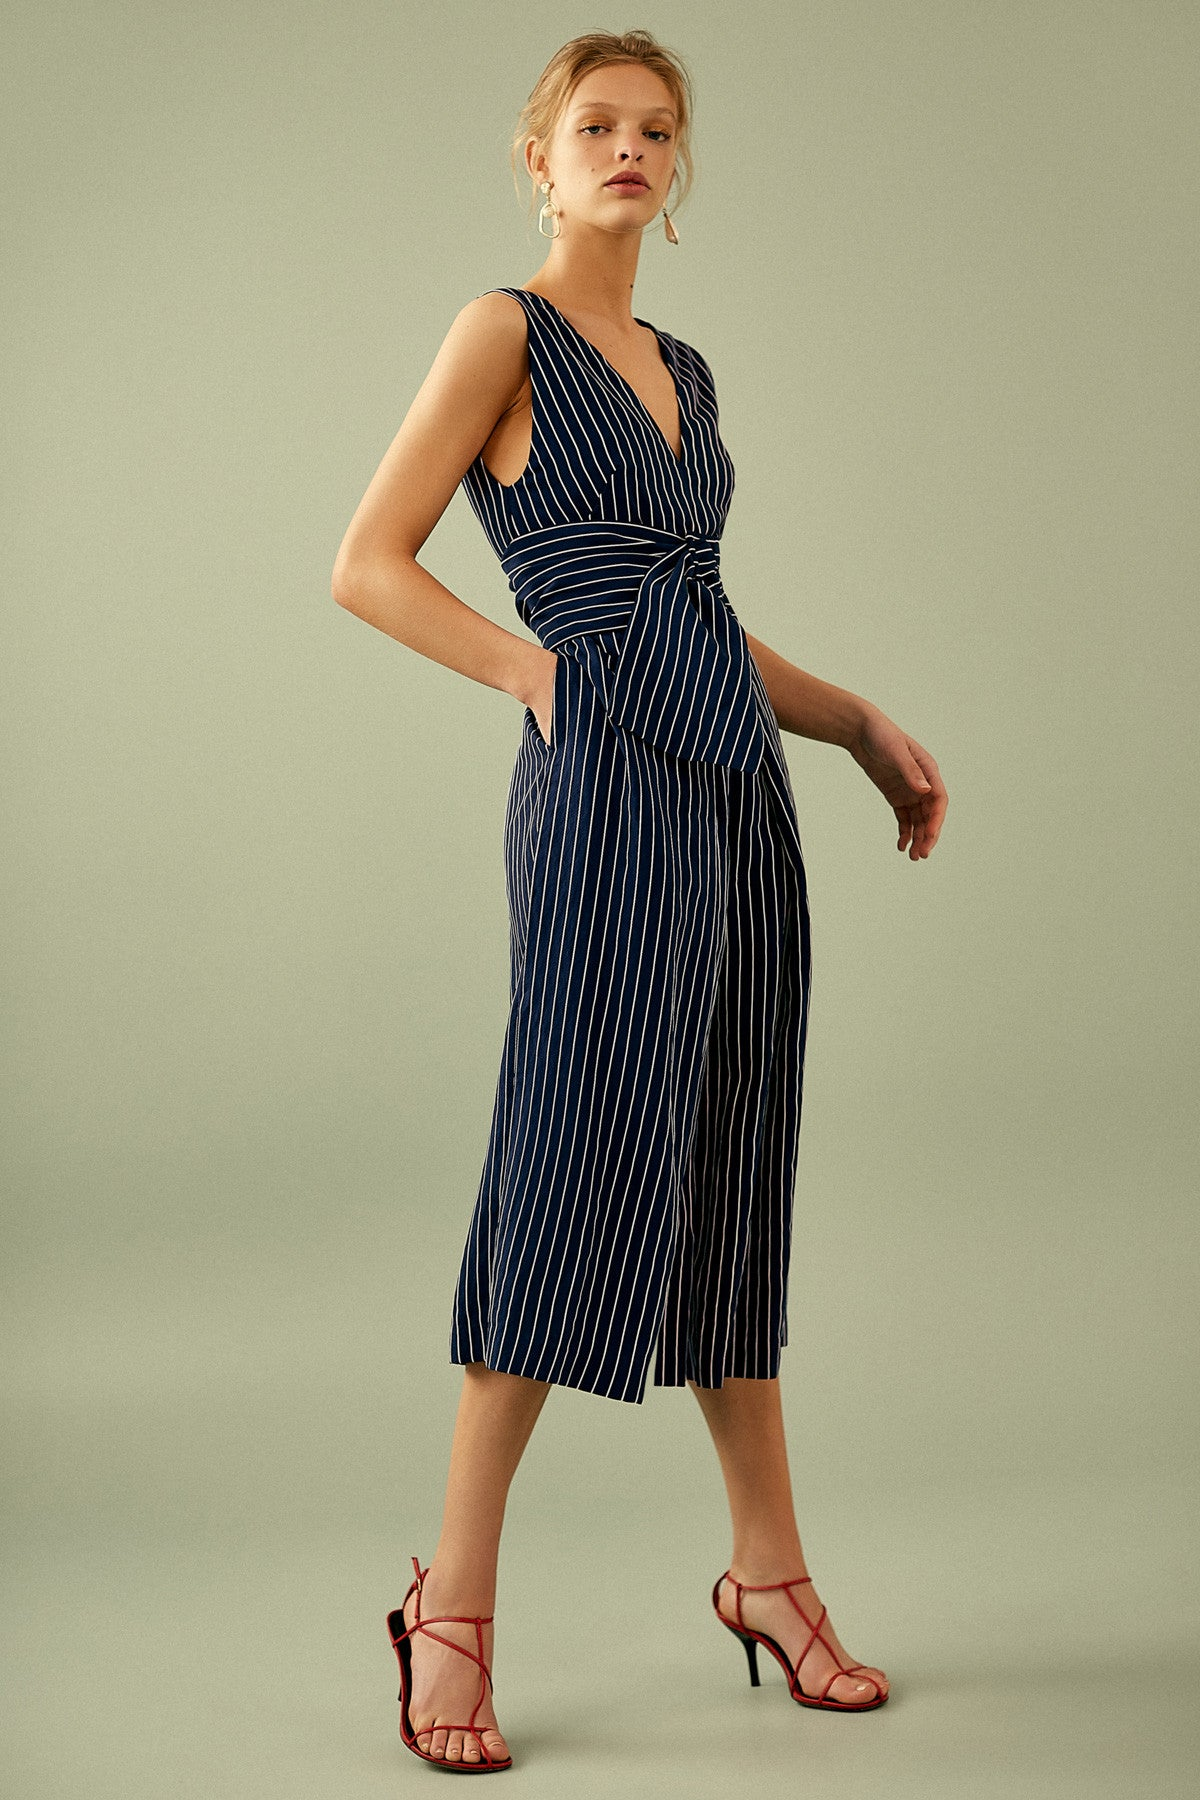 SHADOW OF JUMPSUIT navy w ivory